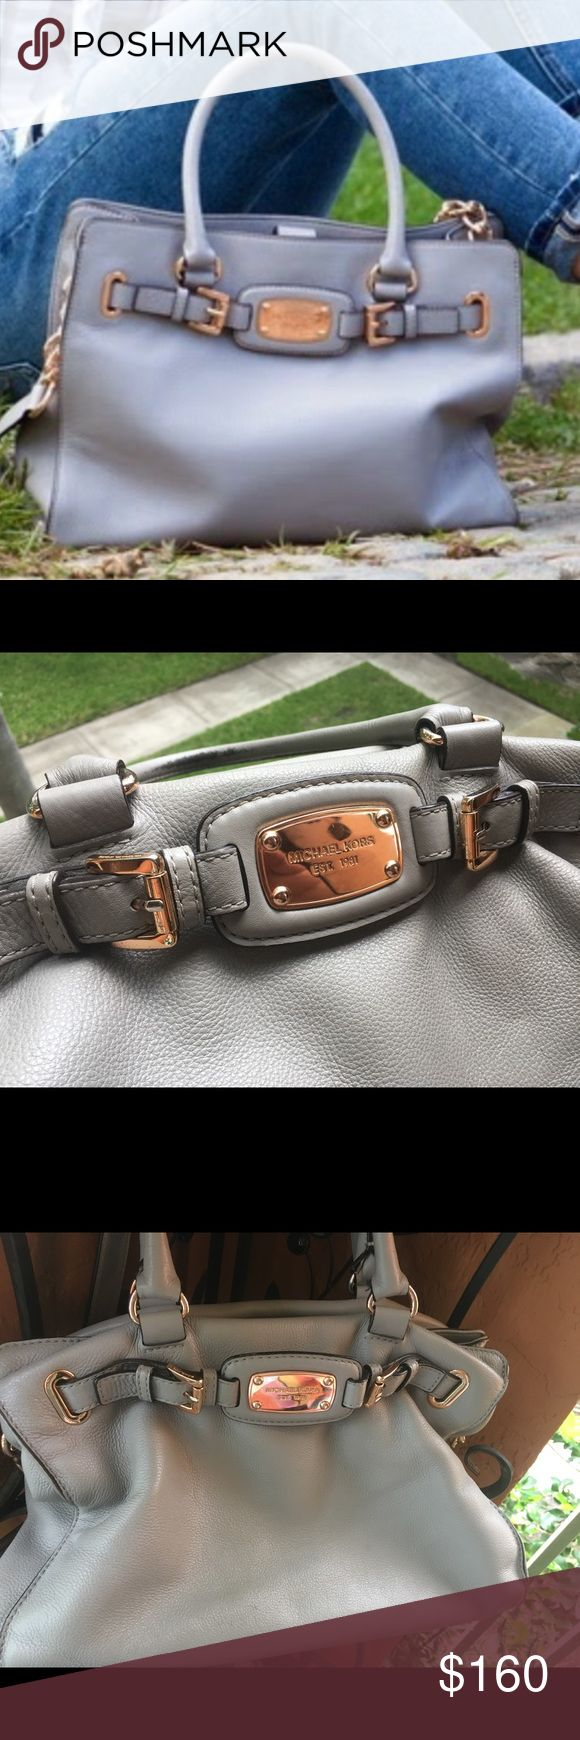 Michael Kors Hamilton handbag Authentic MK handbag in great condition! Gray leather bag with rose gold hardware. Measures 14in W and 10in H. Very soft leather bag in a beautiful gray neutral. Gently used and some makeup marks on the interior. Comes from a smoke-free home. Michael Kors Bags Shoulder Bags